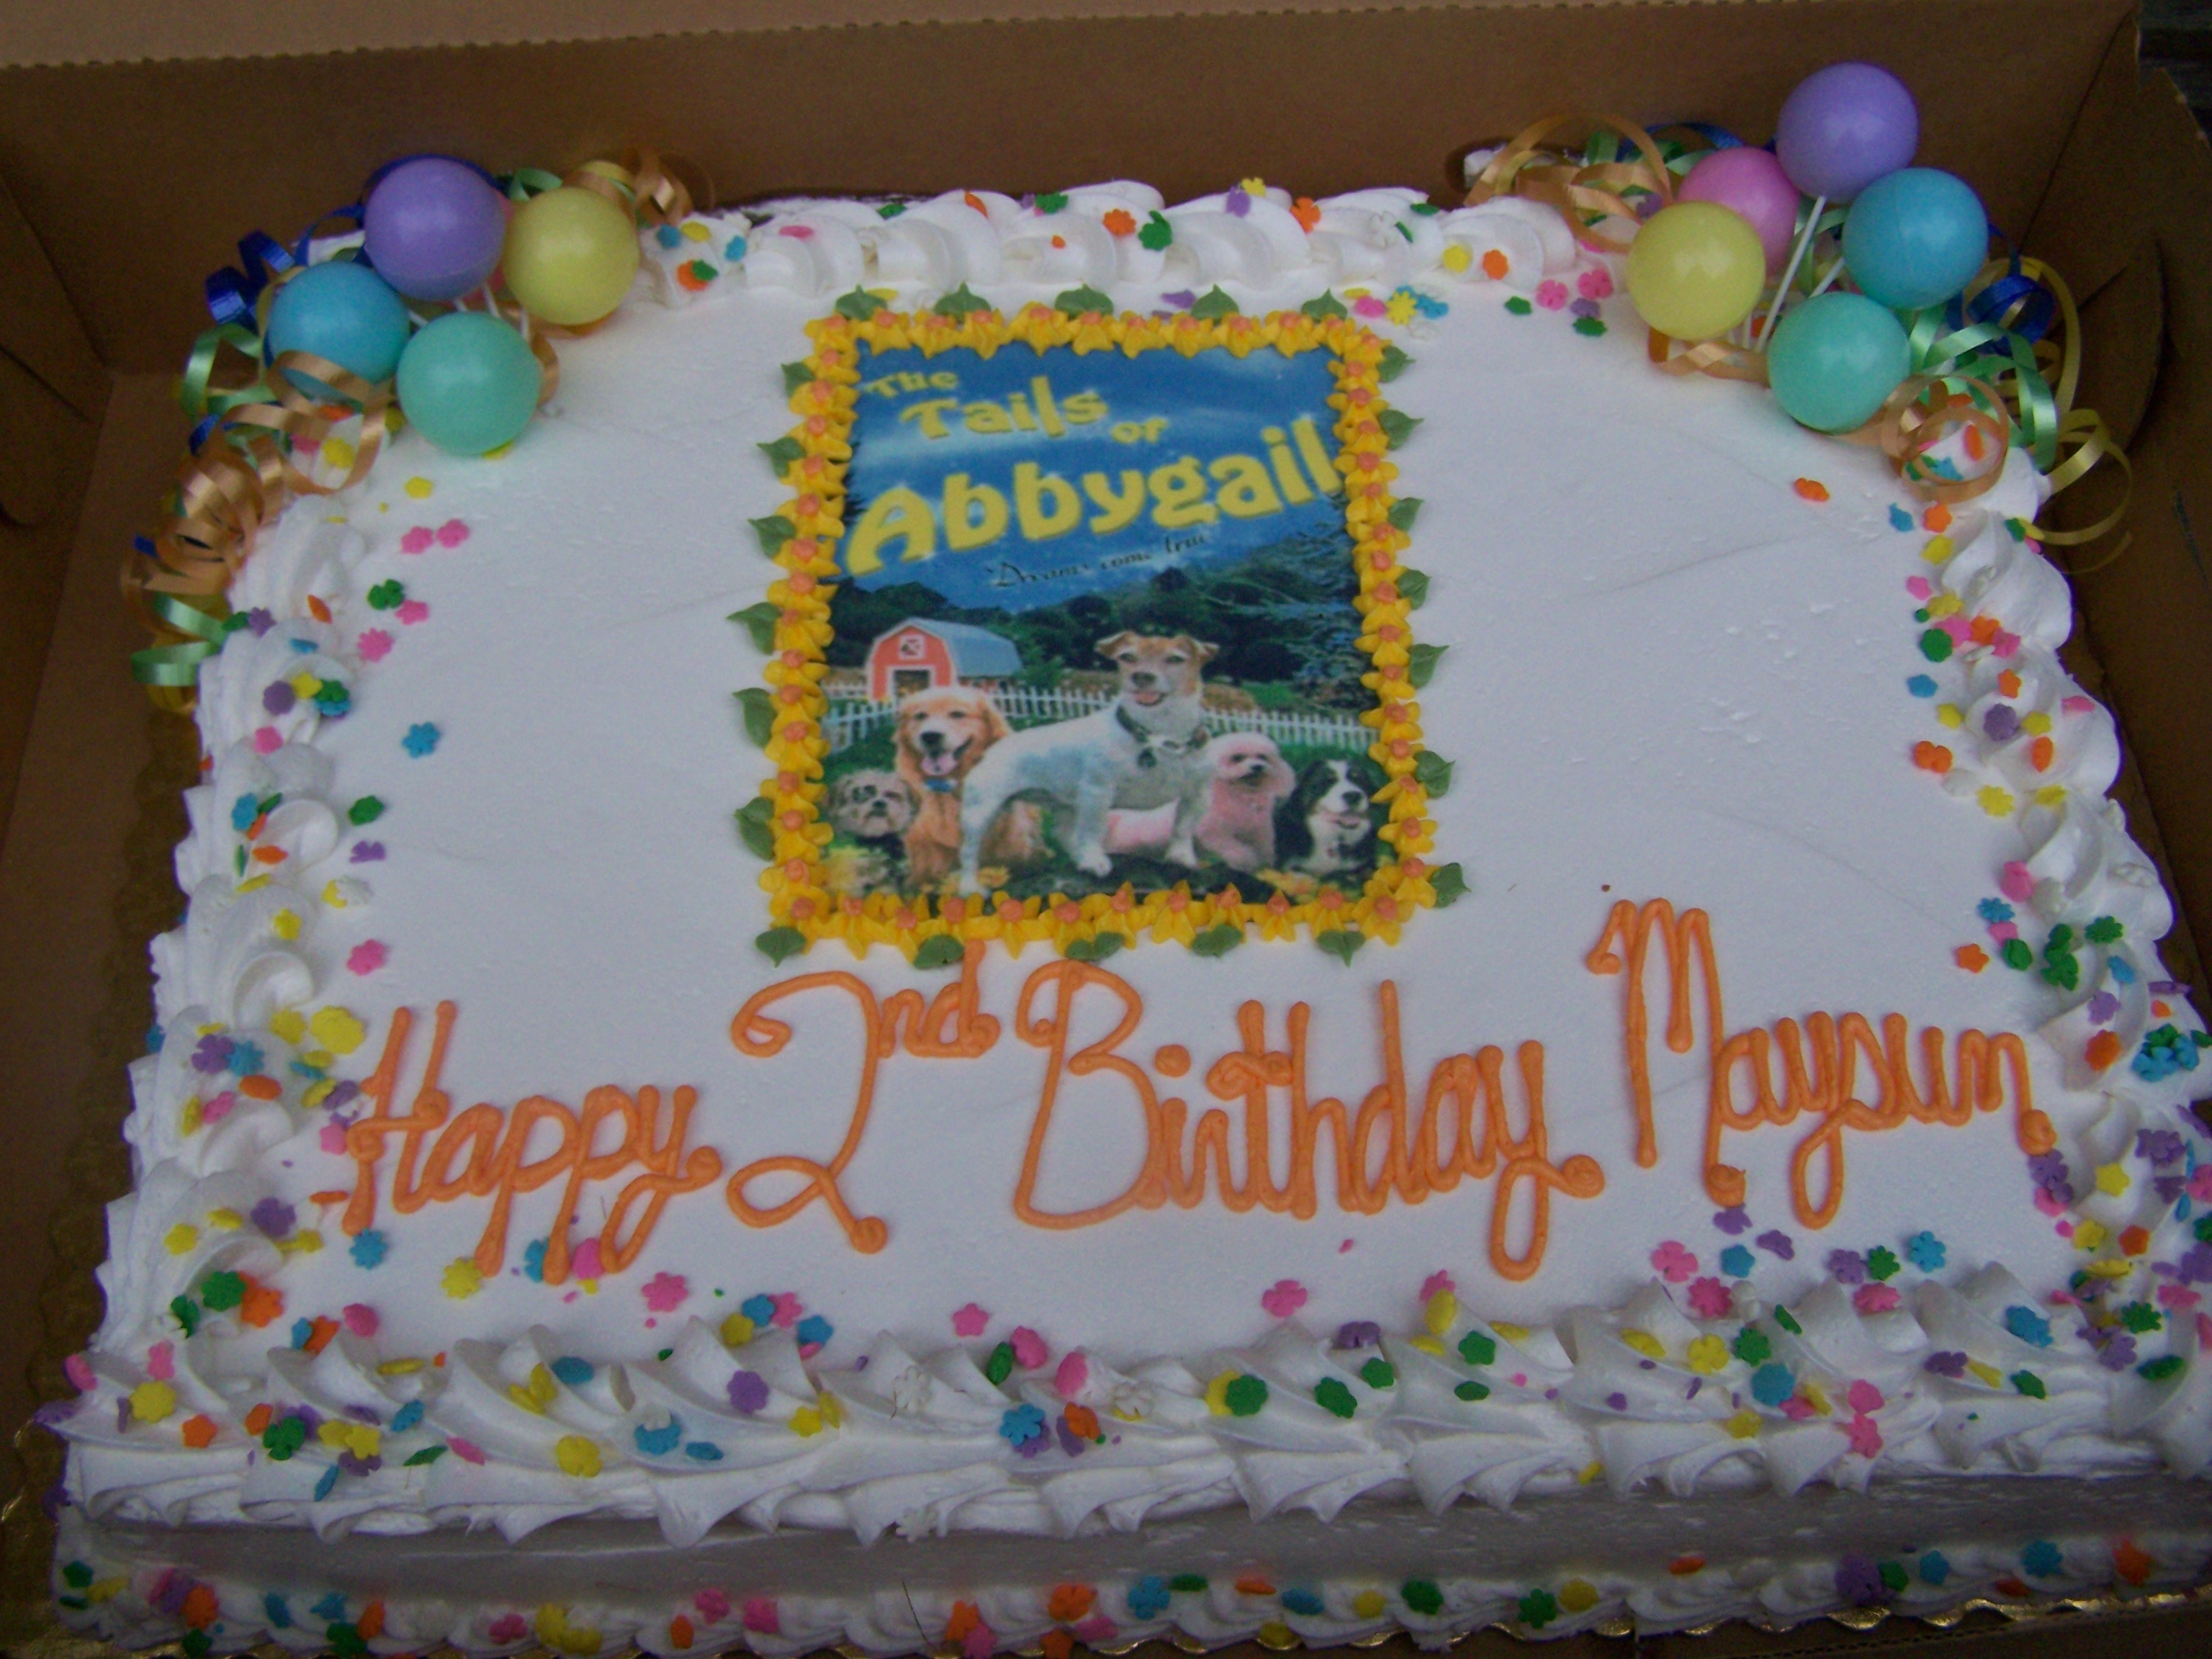 A custom Abbygail birthday cake